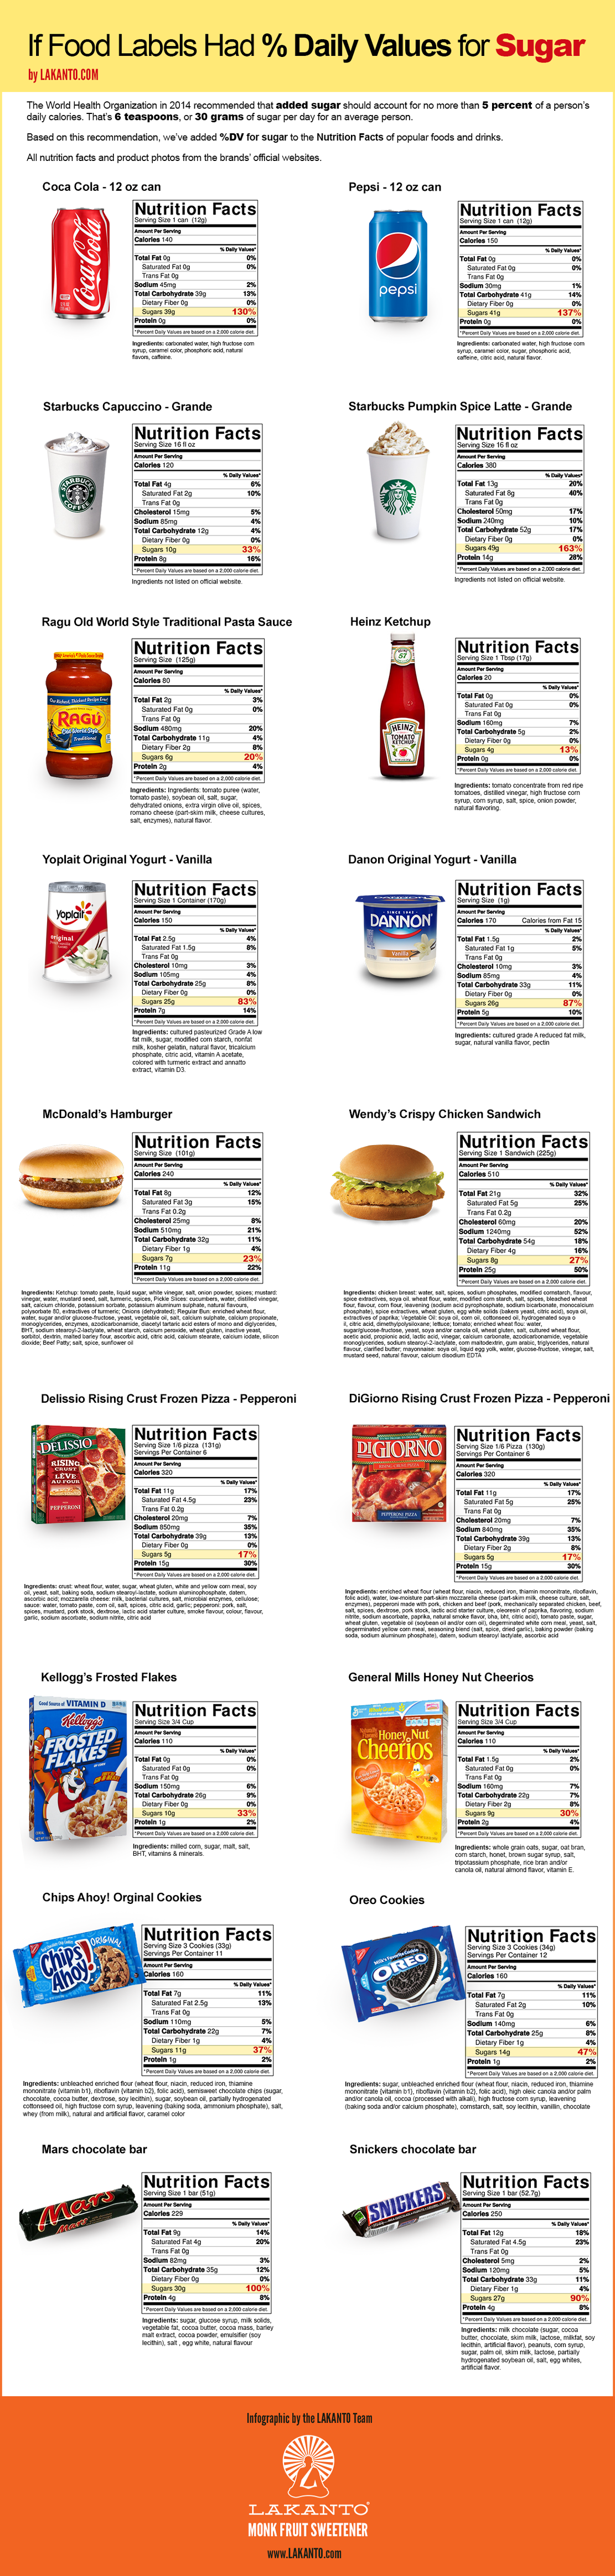 What If Food Labels Were Honest About Their Sugar Percentage? Infographic